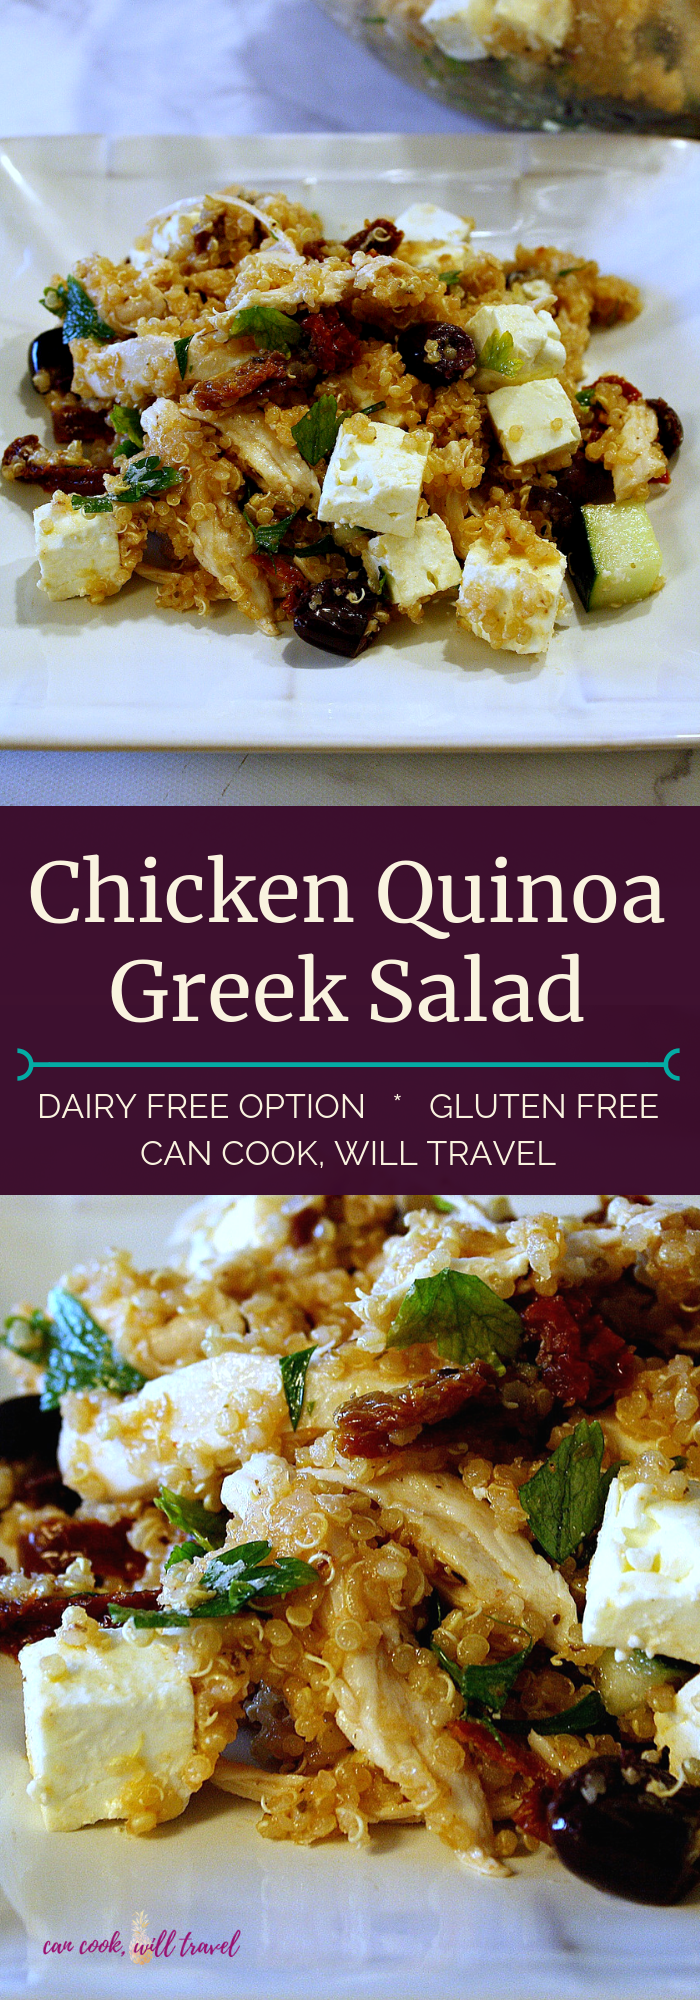 Chicken Quinoa Greek Salad_Collage1